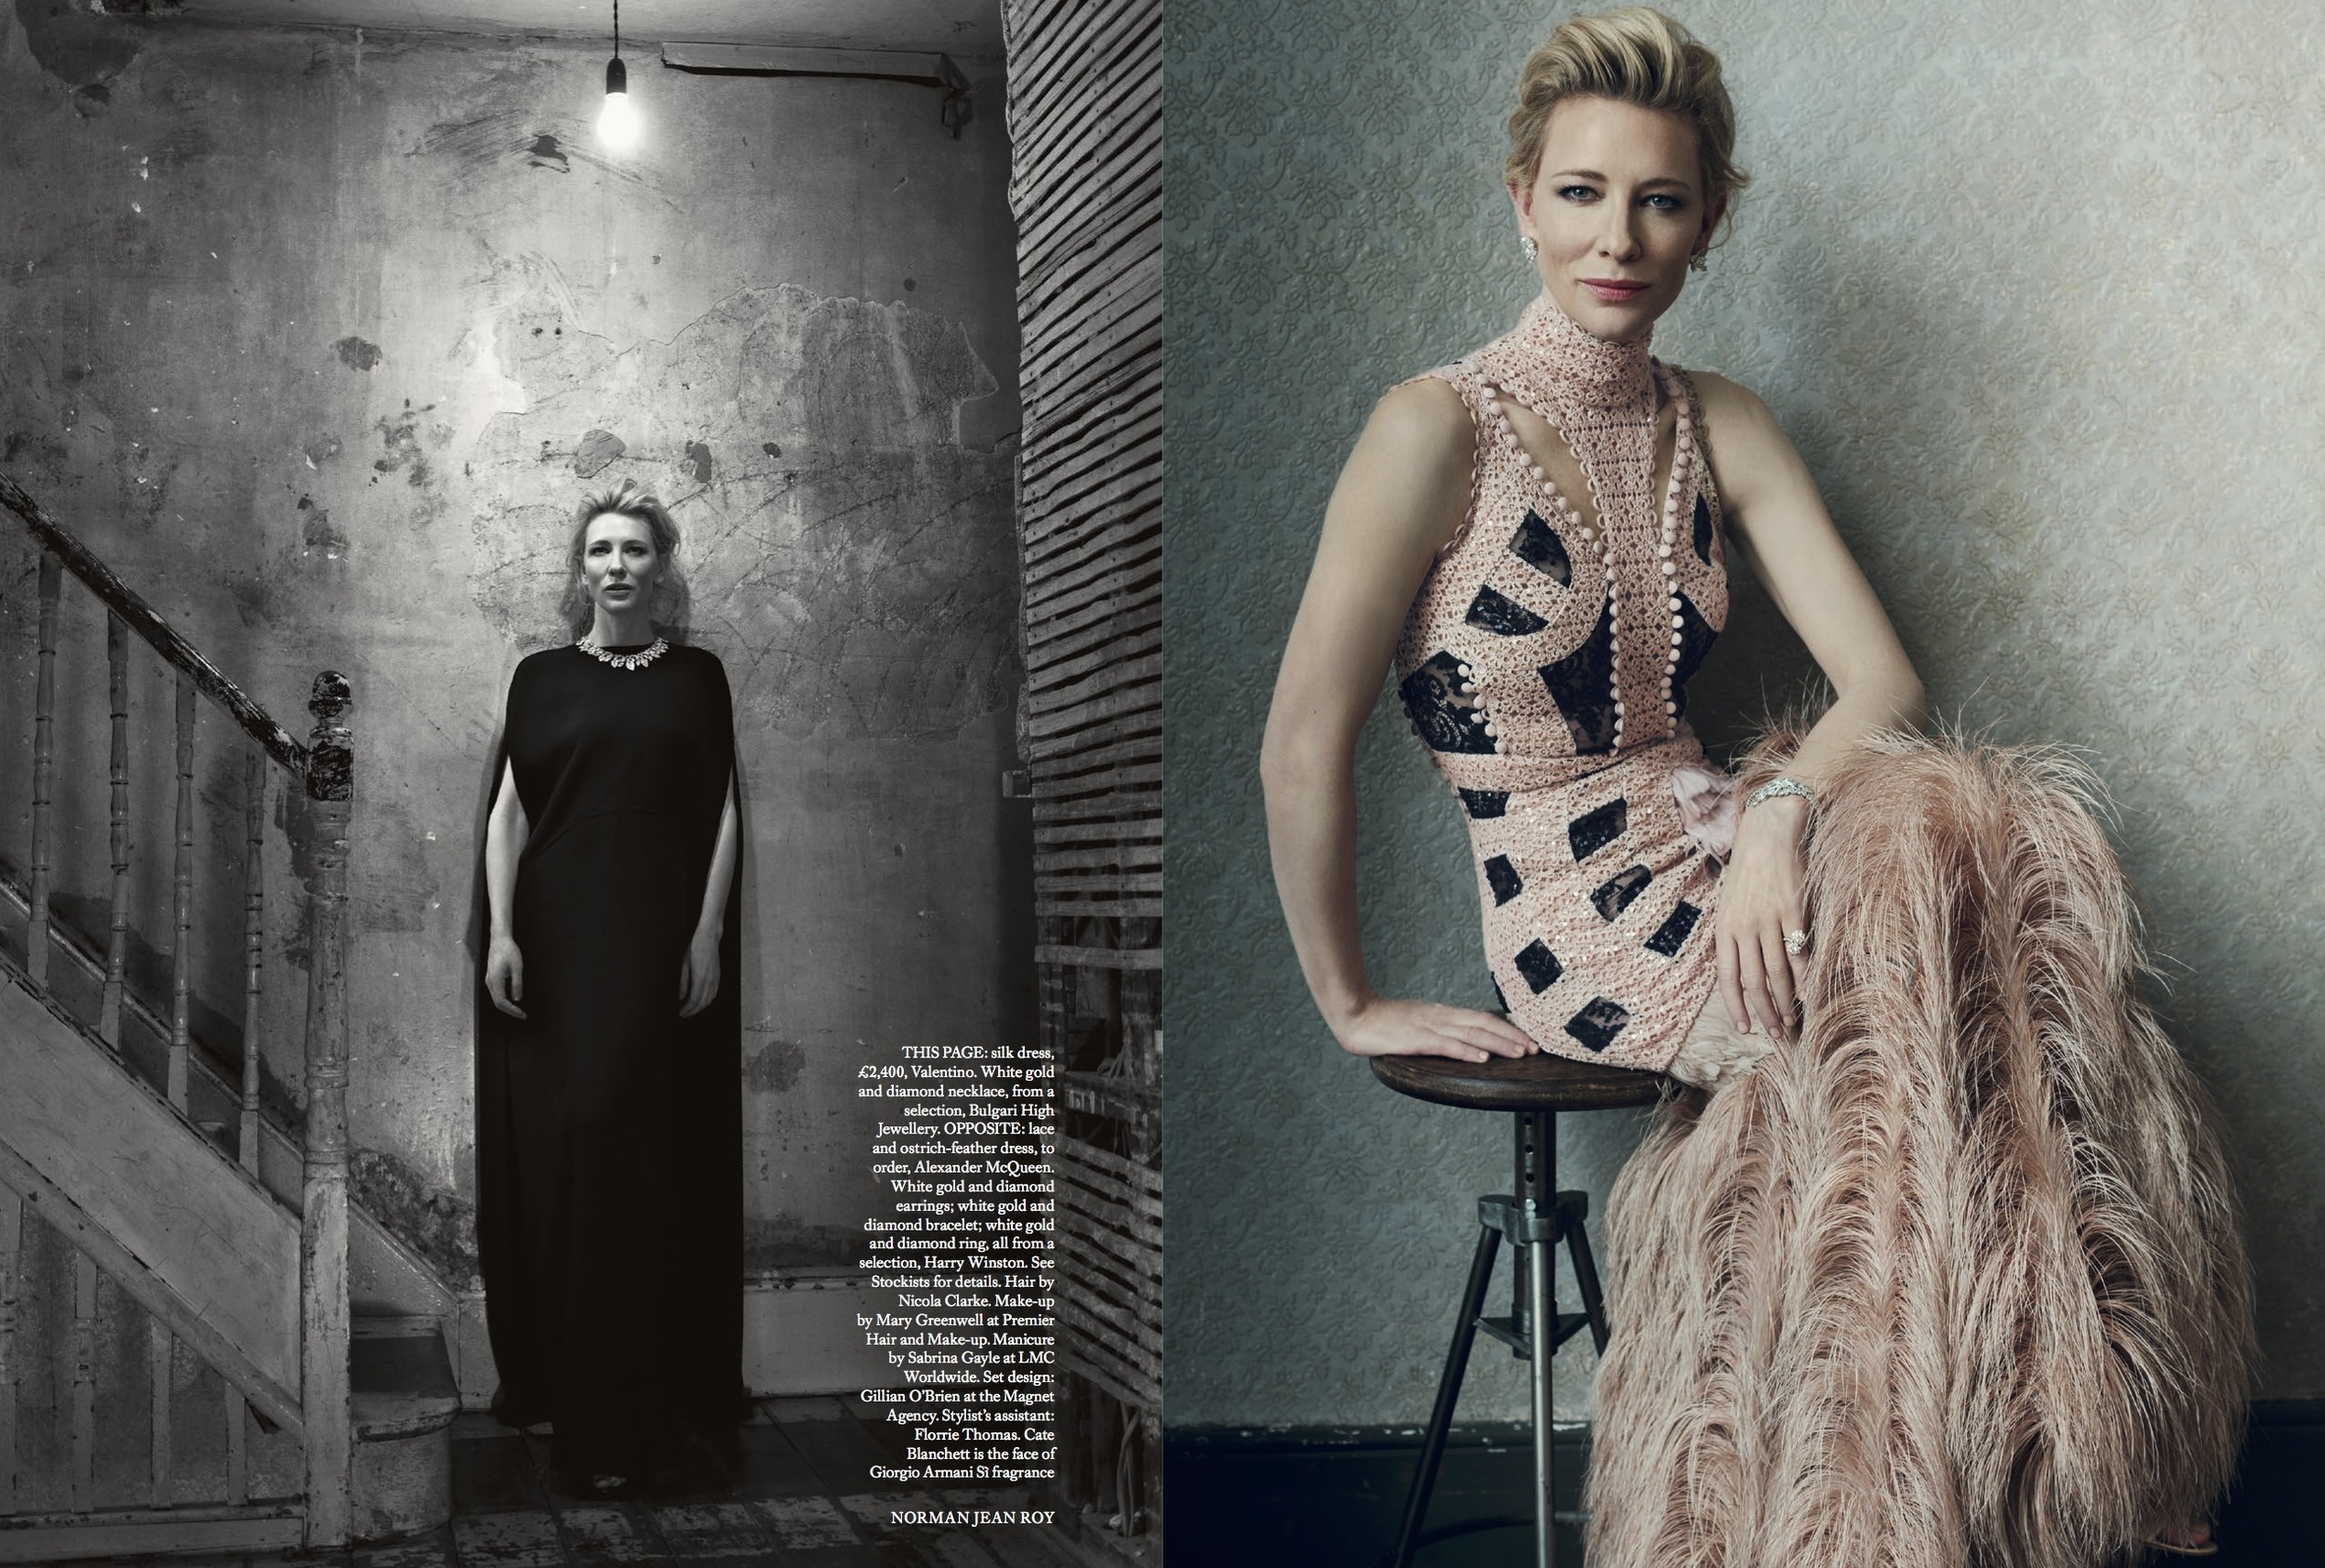 Cate Blanchett Cover Story for Harper's Bazaar, styled by Charlie Harrington. Spread 6.